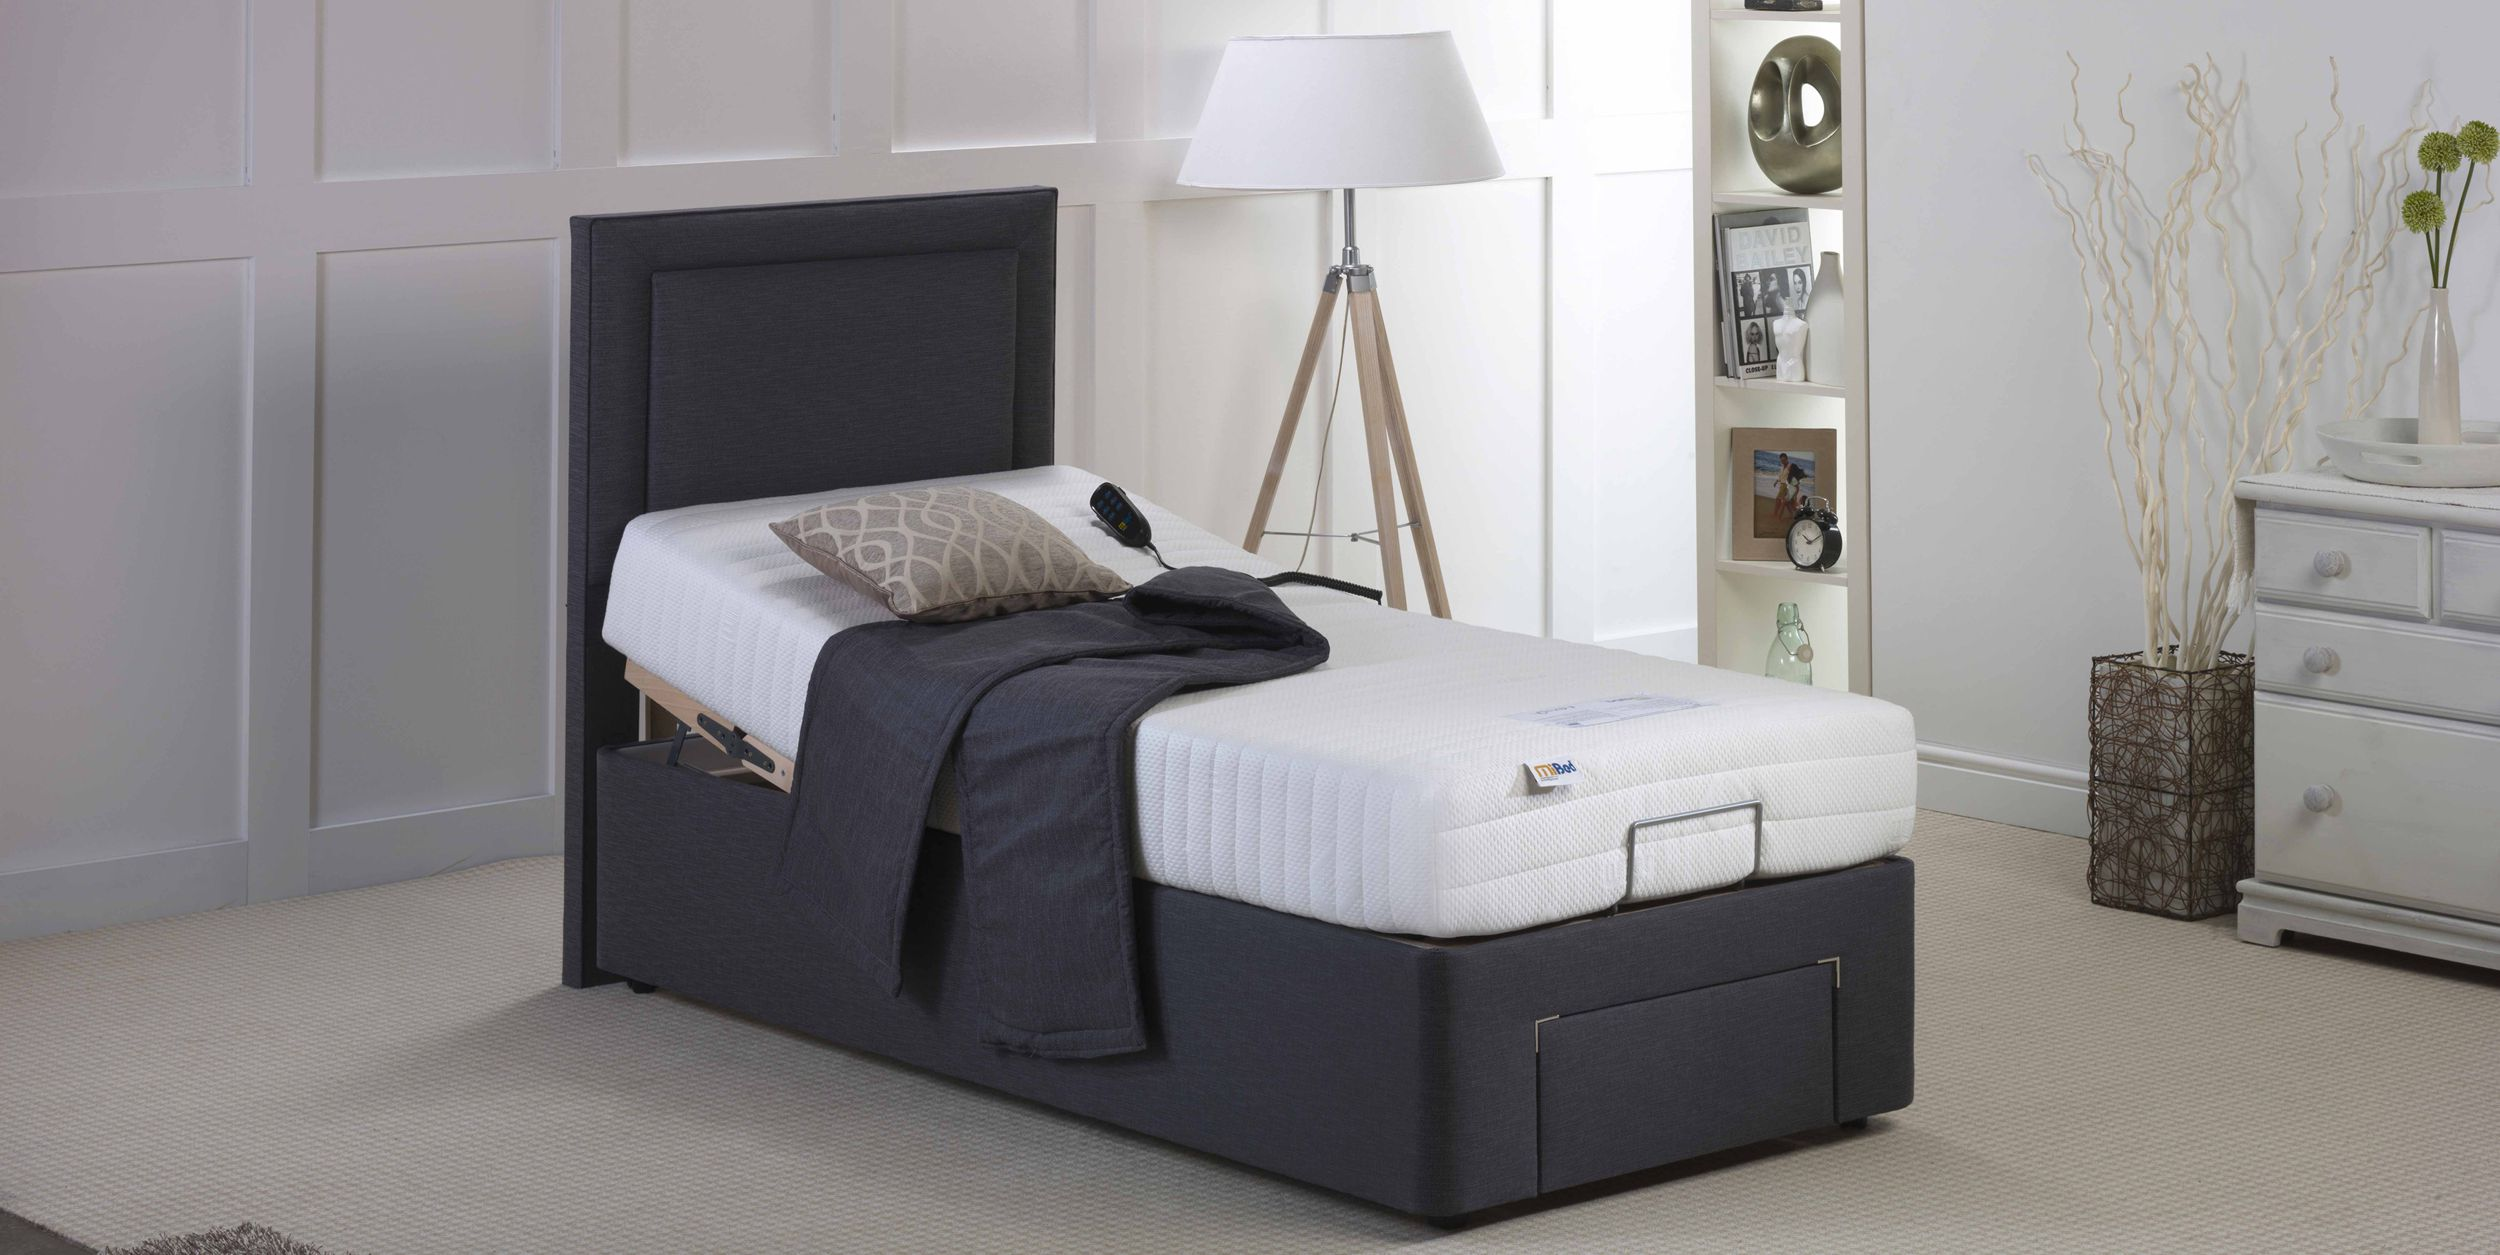 Beds from Arun Furnishers in Littlehampton